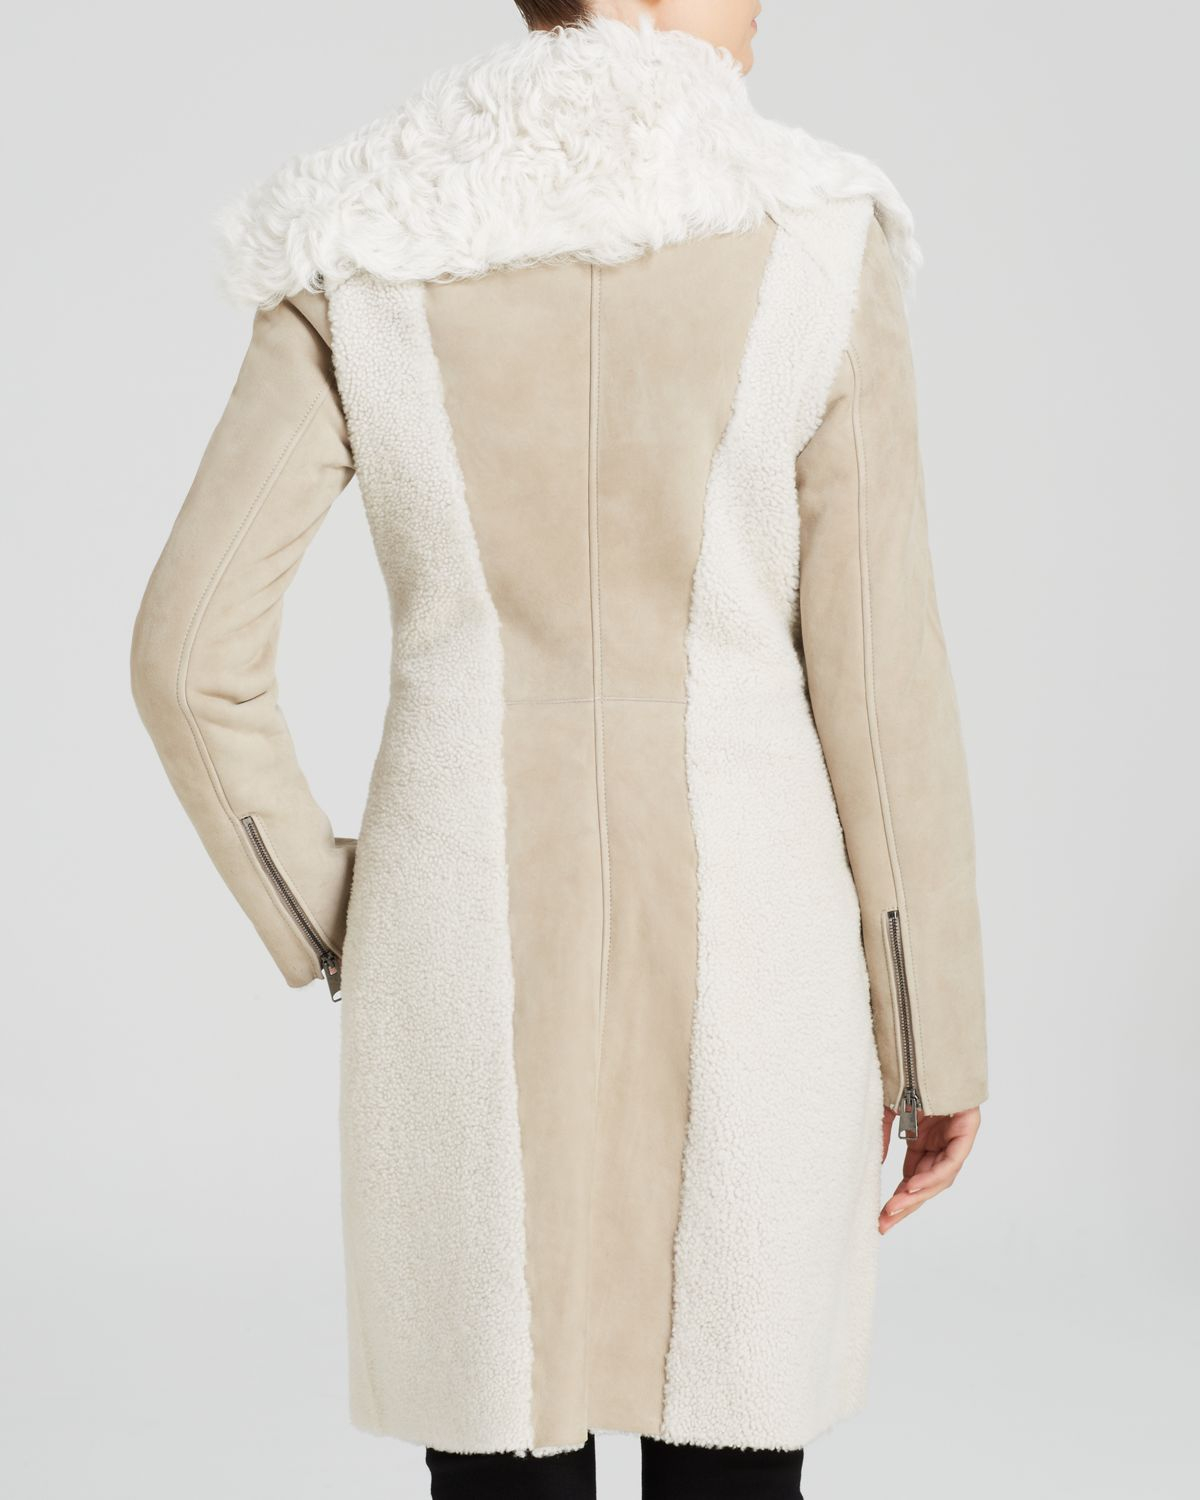 Maximilian Maximilian Asymmetric Curly Collar Lamb Shearling Coat